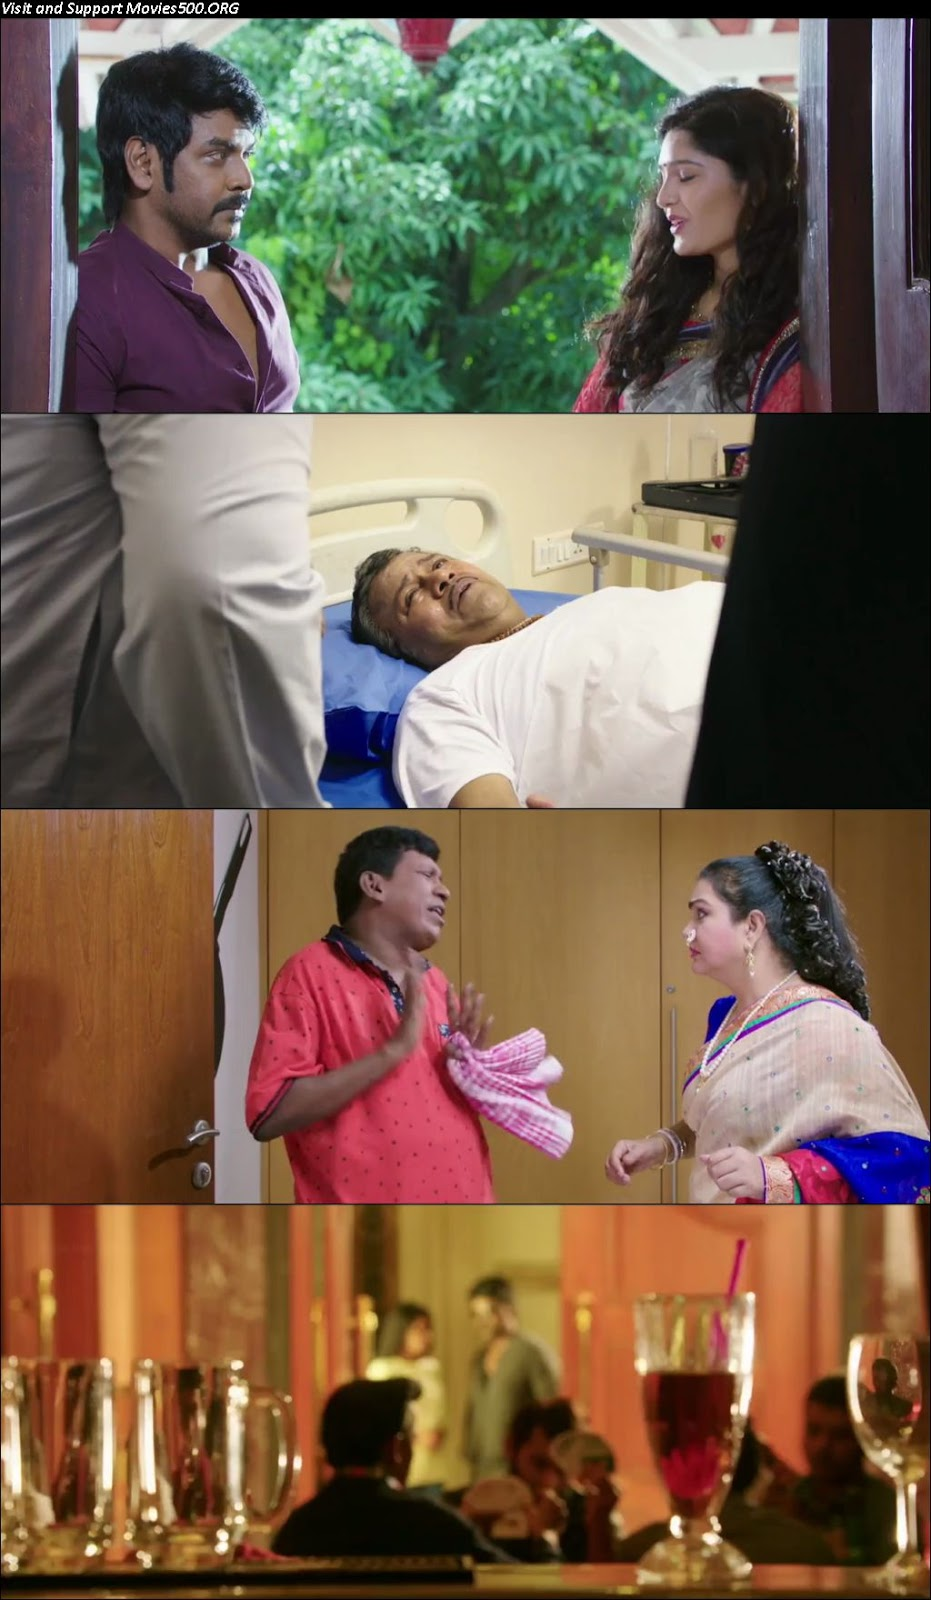 Sivalinga 2017 Dual Audio Hindi Download HDRip 720p ESubs at movies500.site